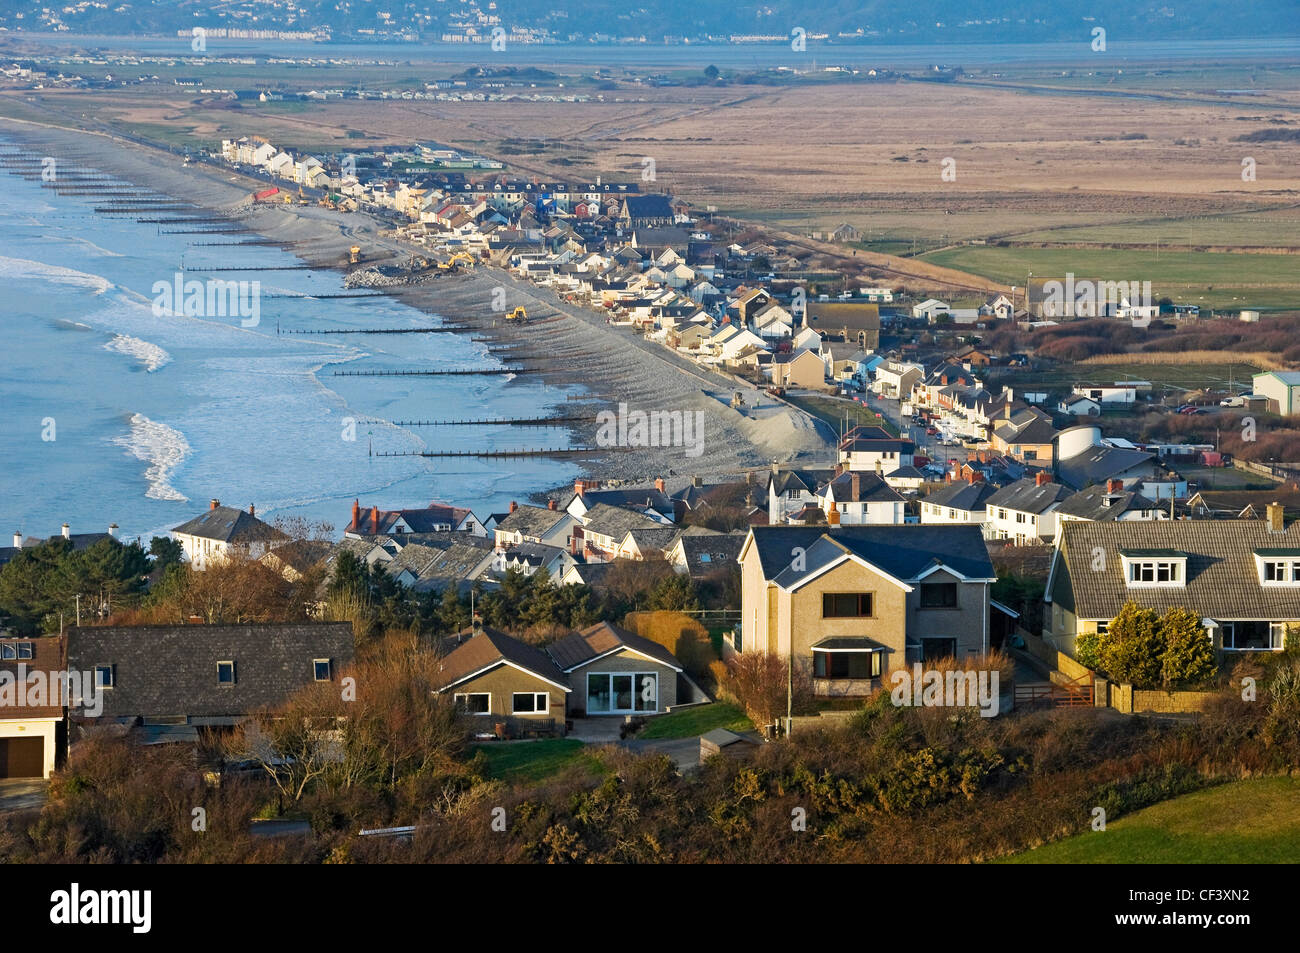 View over the coastal village of Borth with the River Dyfi estuary in the background. - Stock Image